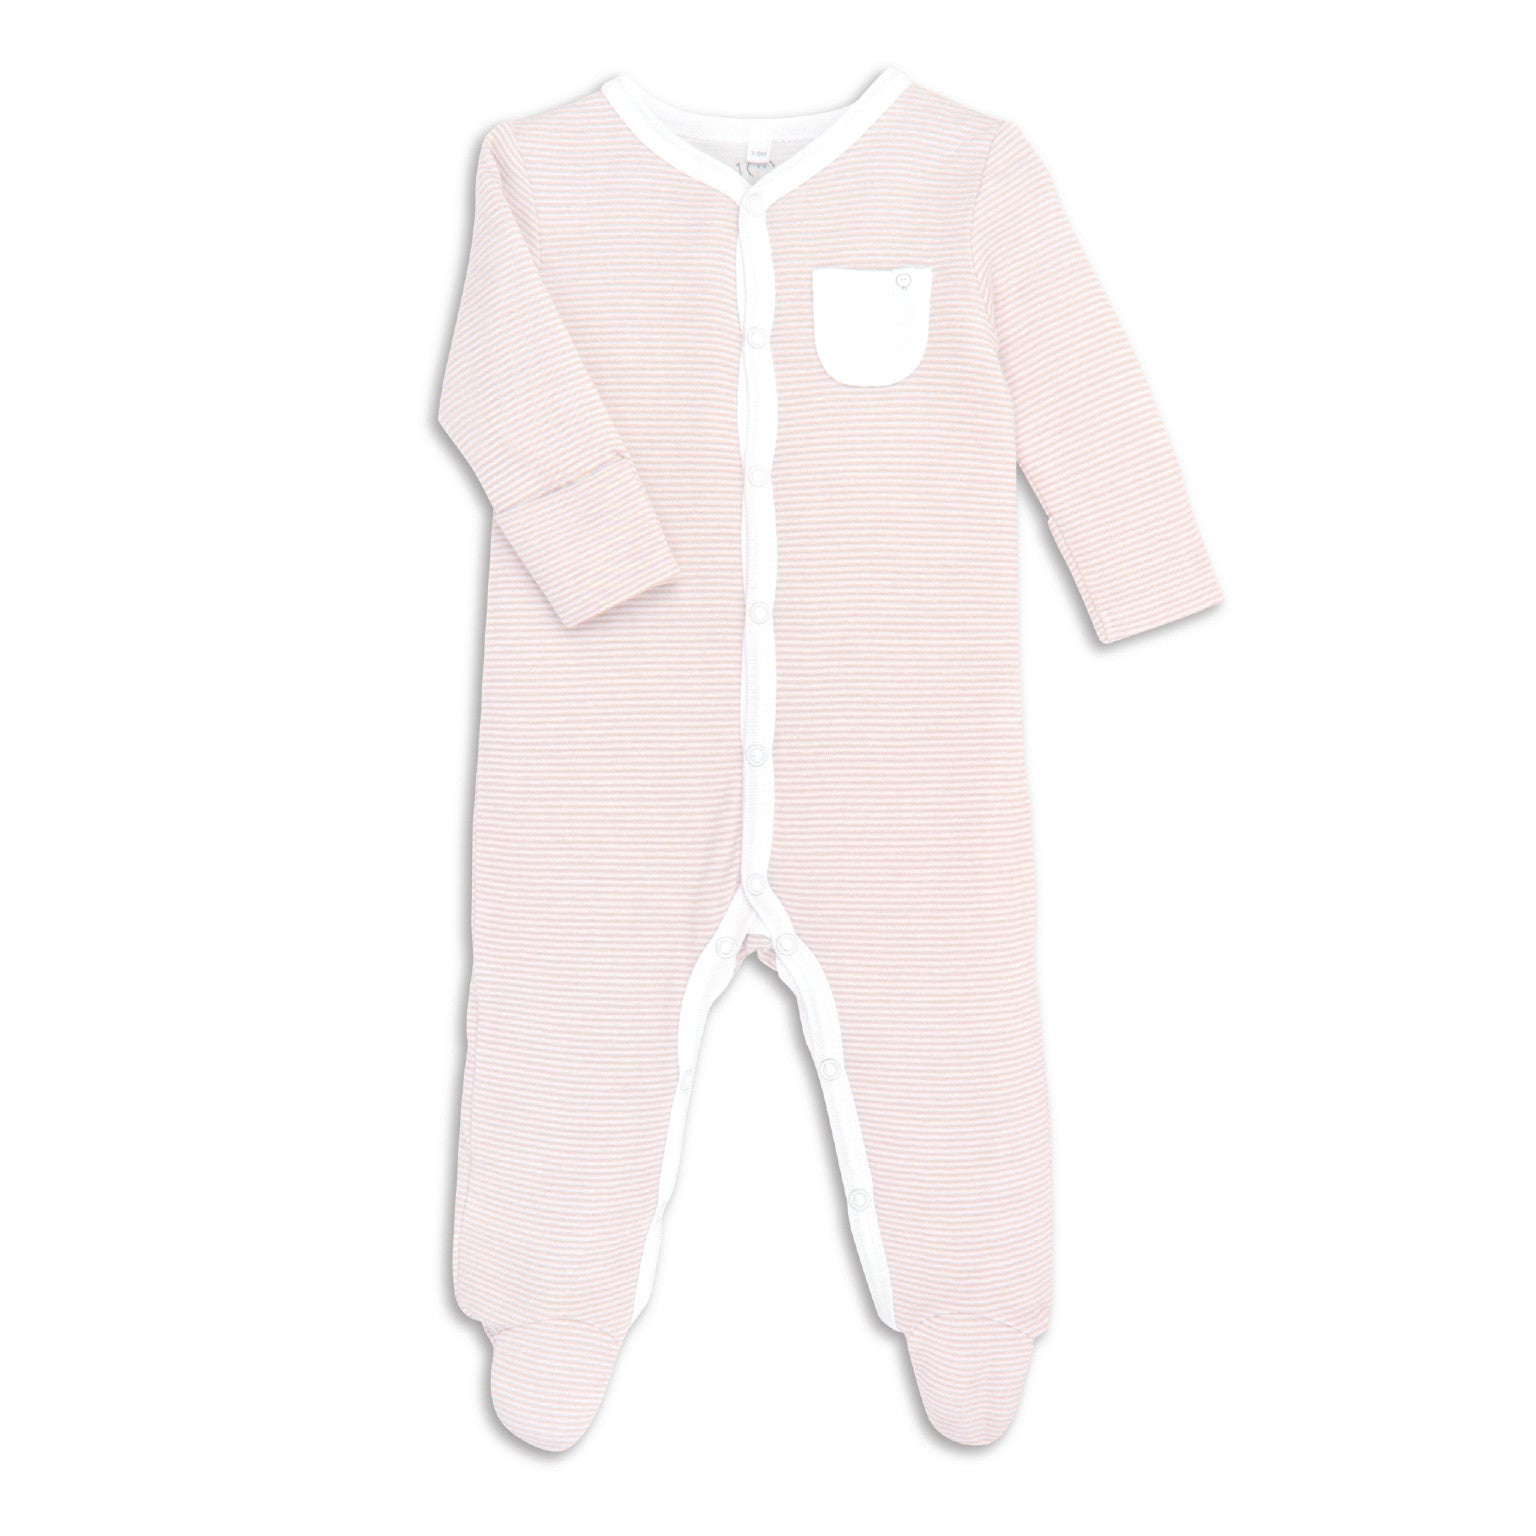 Blushed Striped Babygrow Buy baby MORI babygrows online in Ireland